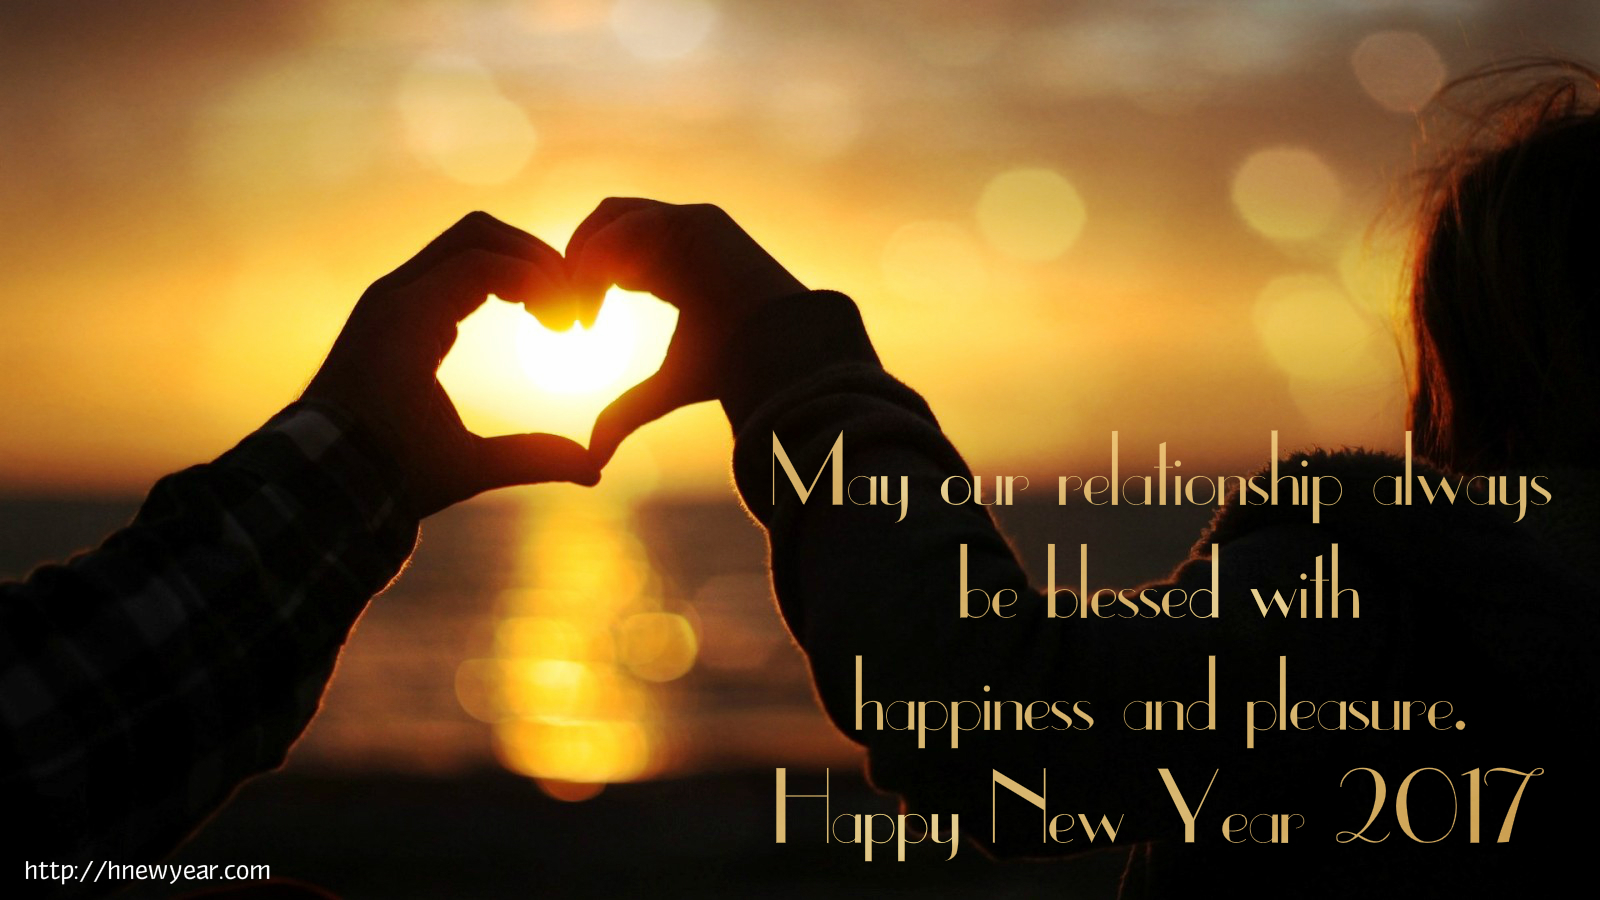 Romantic New Year Wishes 2017 15